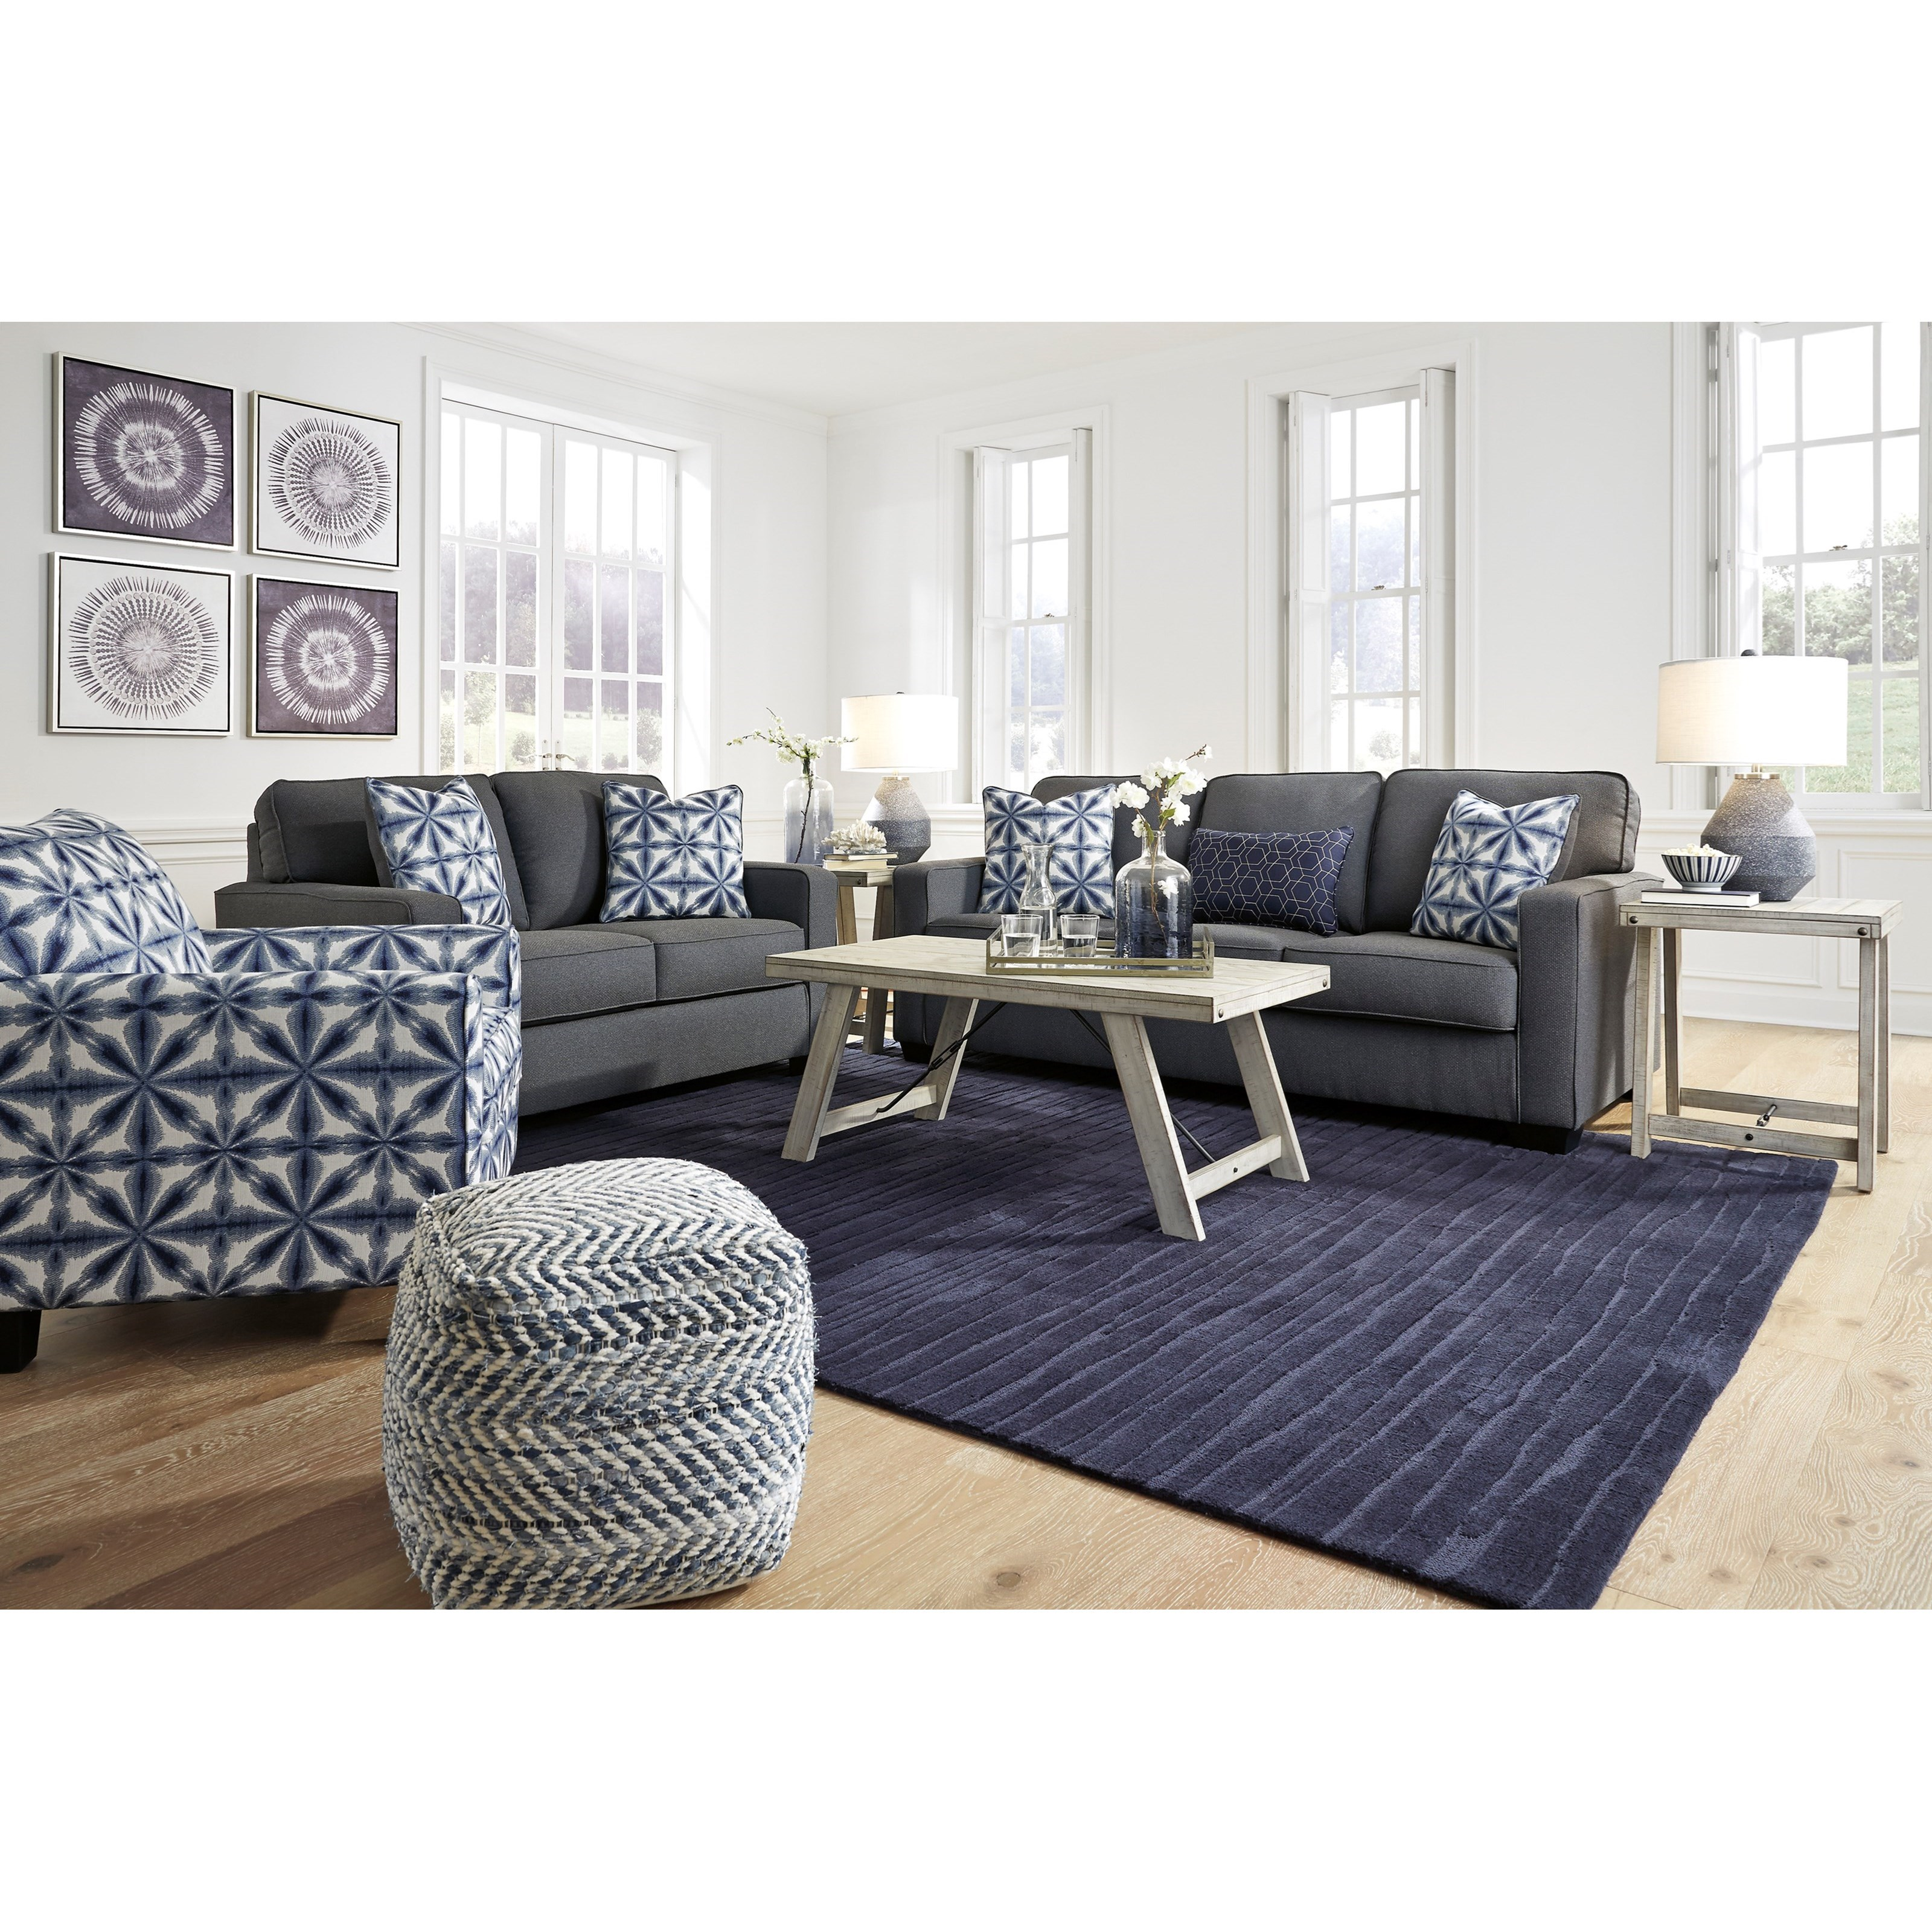 Kiessel Nuvella Living Room Group by Benchcraft at Houston's Yuma Furniture